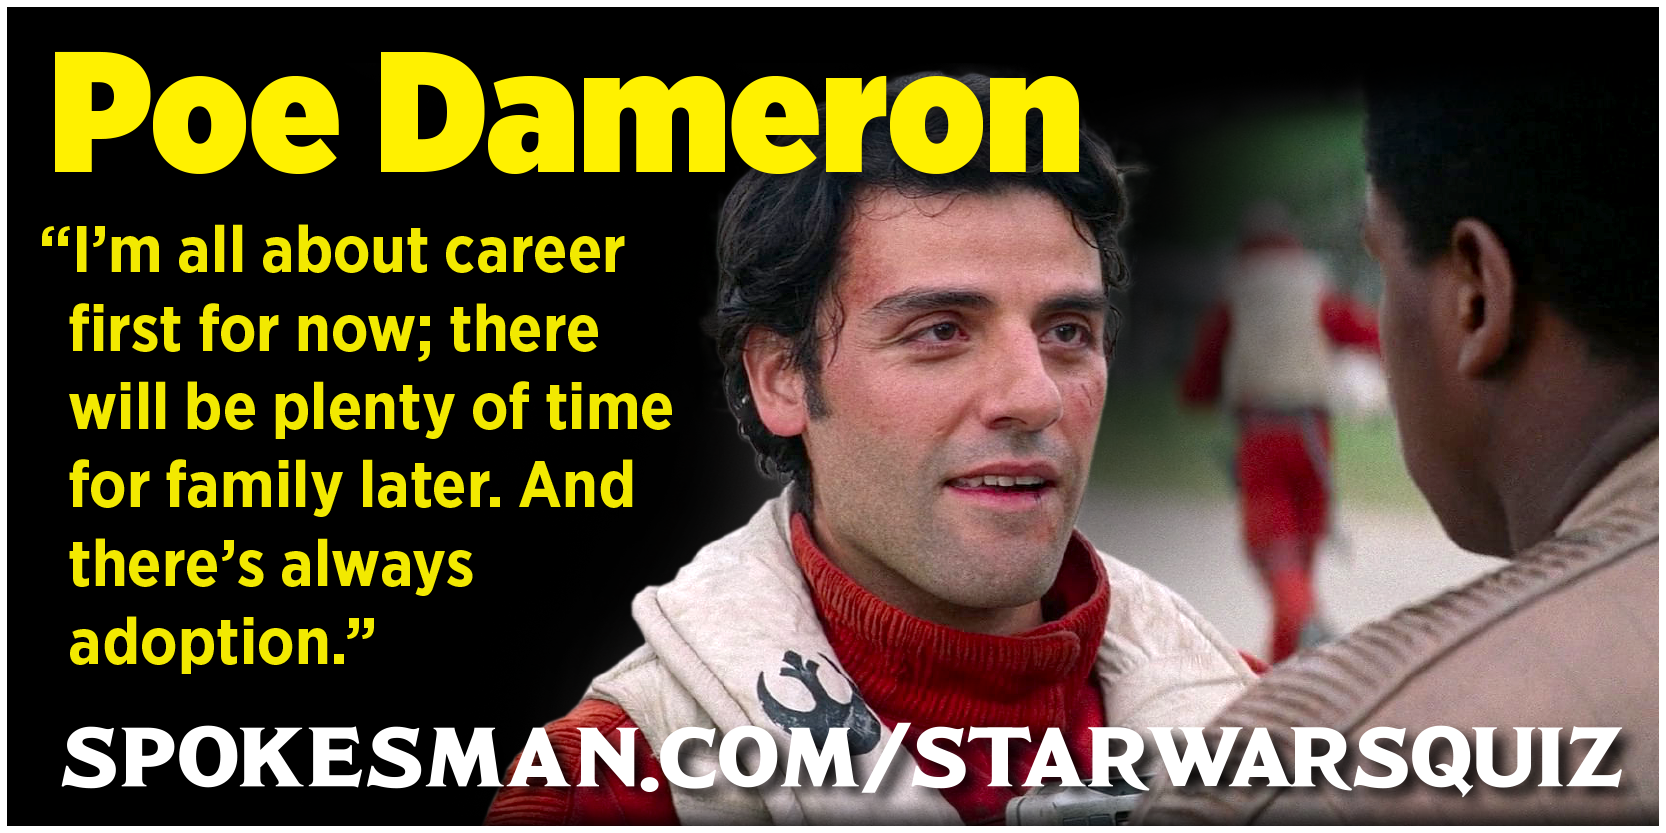 Star Wars Character Quiz The Spokesman Review